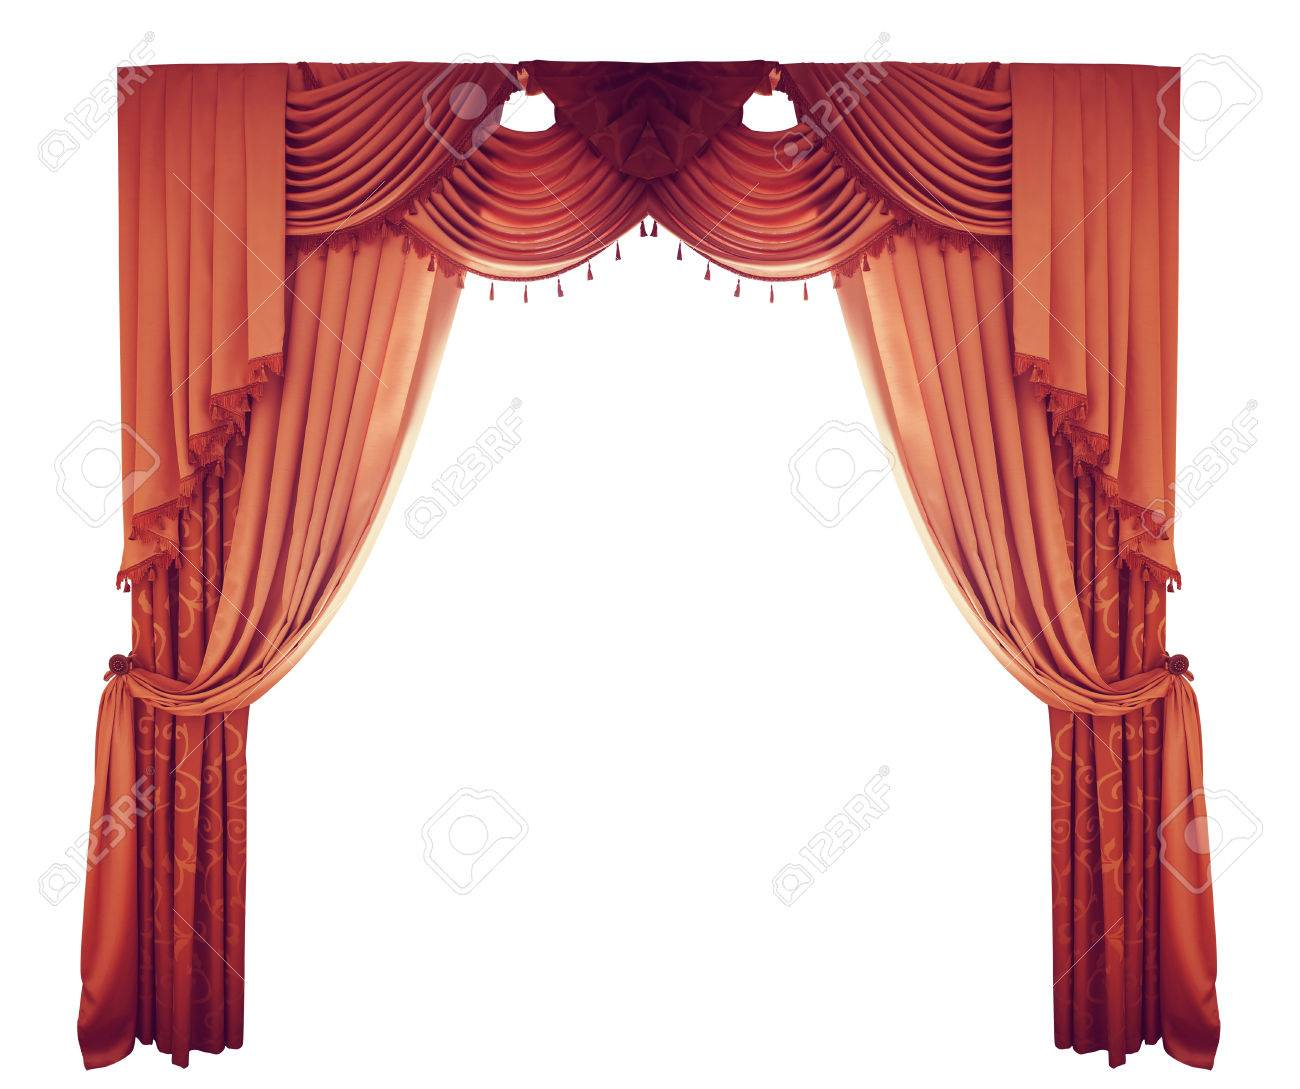 Royalty free or white curtain background drapes royalty free stock - Red Curtains On A White Background Stock Photo 41354874